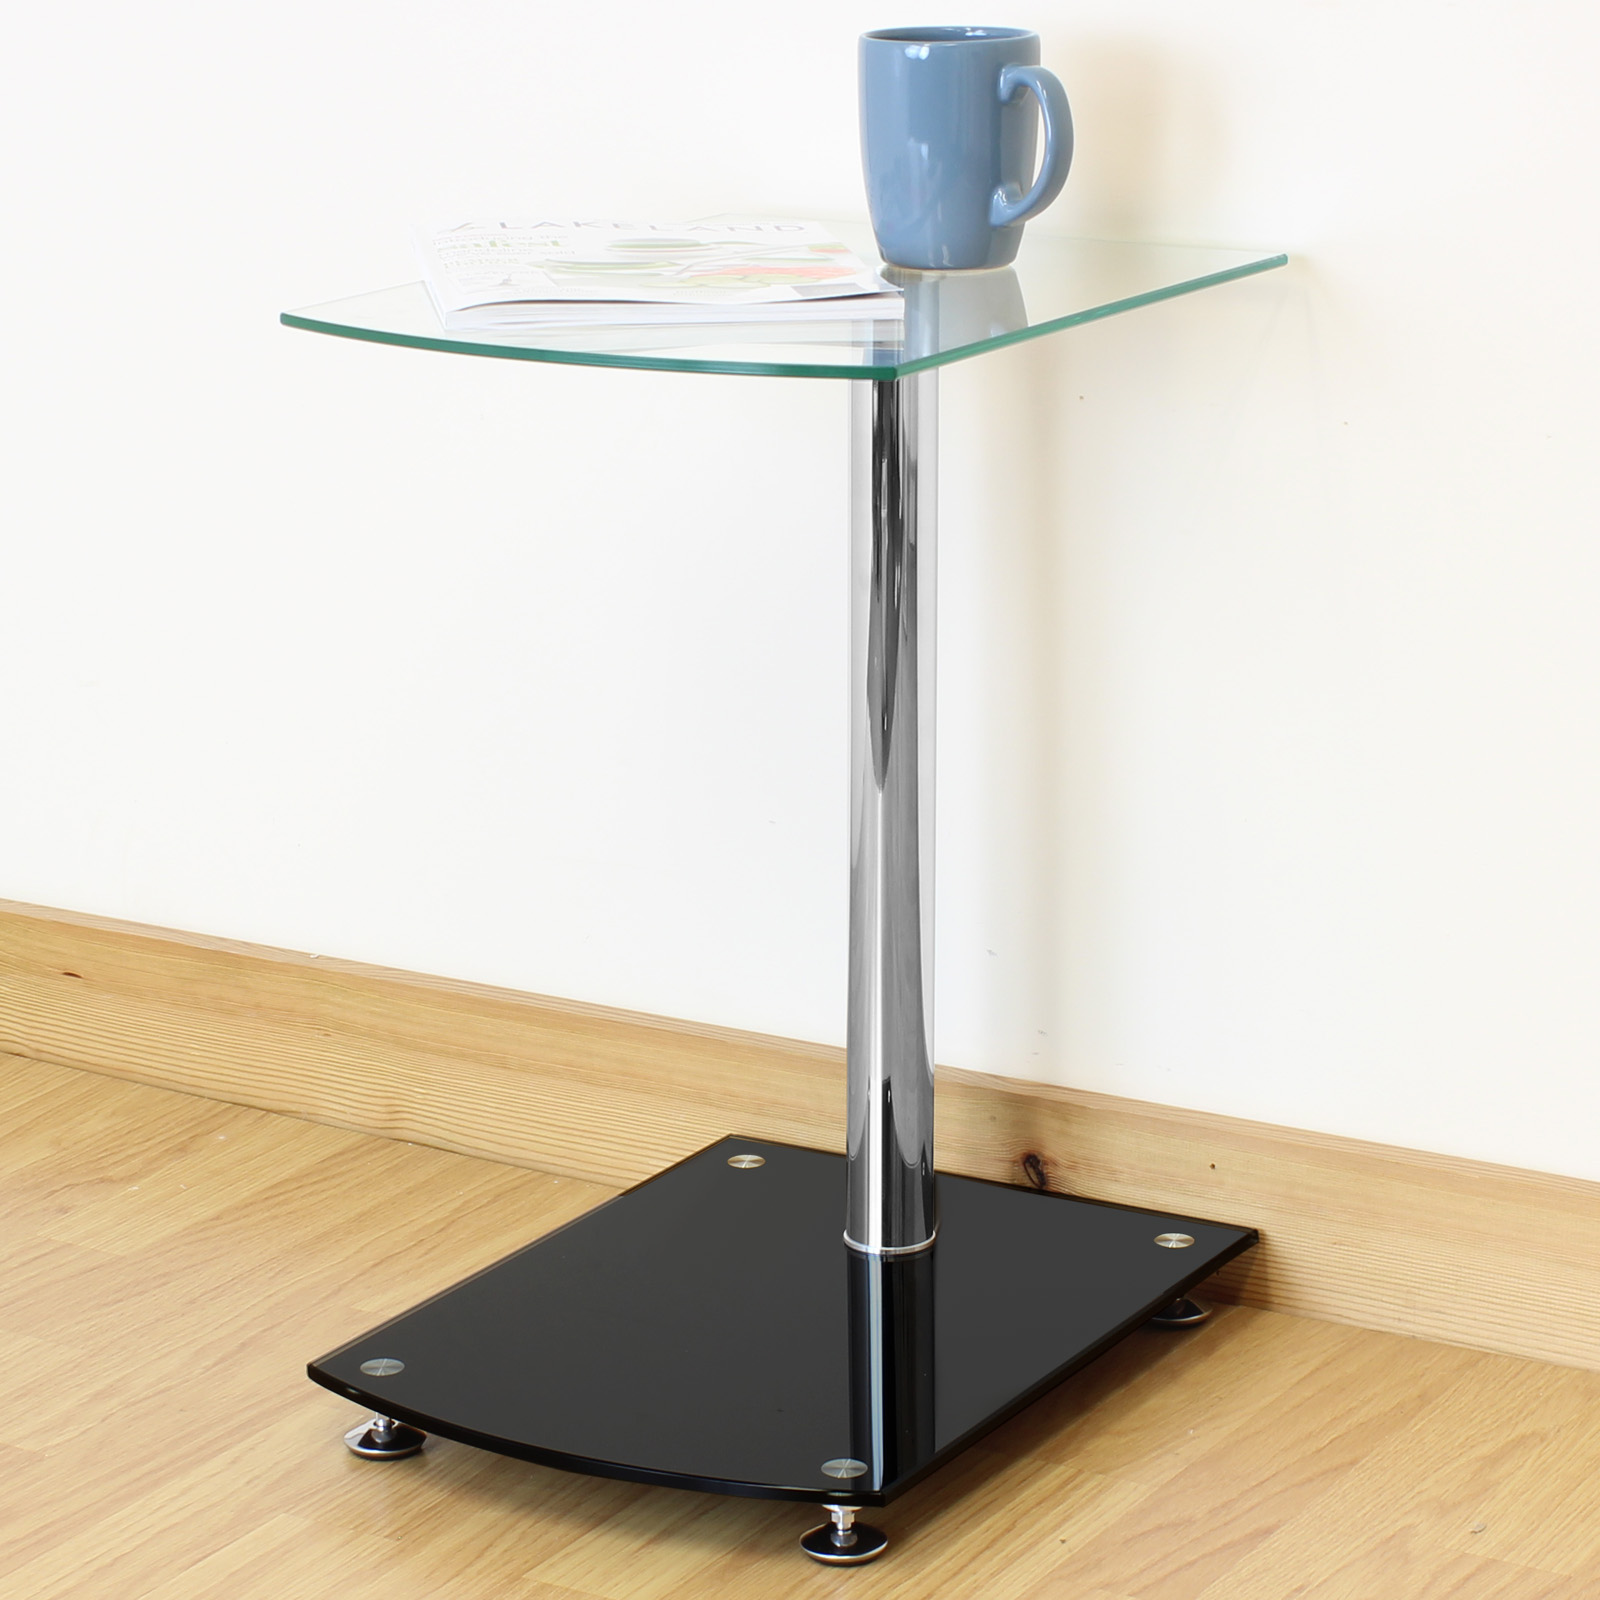 Bedroom Sofa Table: Black & Clear Glass Side/End/Sofa Table Lounge/Bedroom